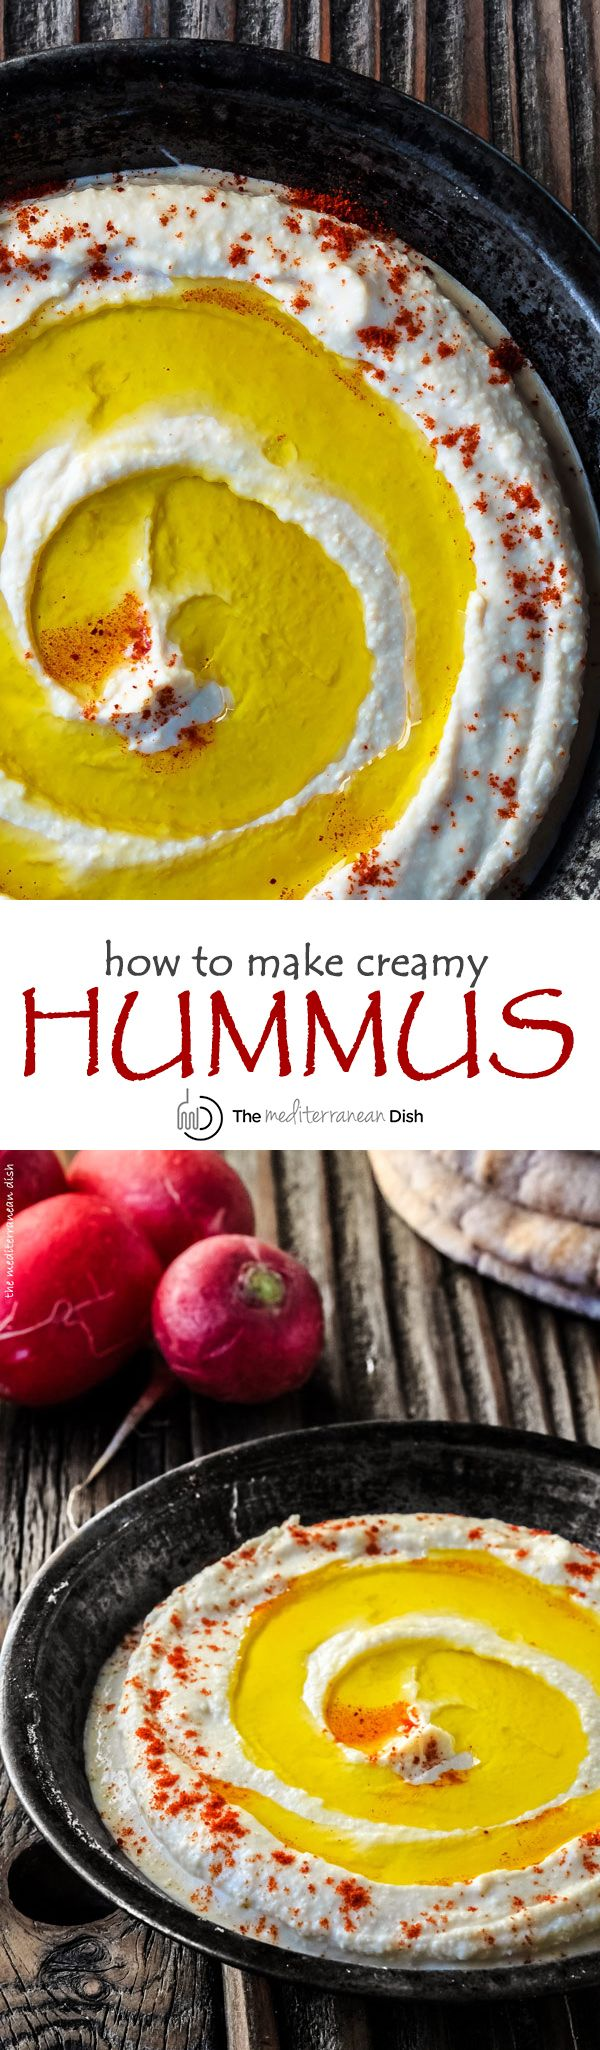 How to Make Traditional Creamy Hummus. Learn the secrets to the creamiest, most authentic hummus bite you'll have. Step-by-step pictures included. Once you try this recipe, you won't go back! http://www.themediterraneandish.com/how-to-make-hummus/